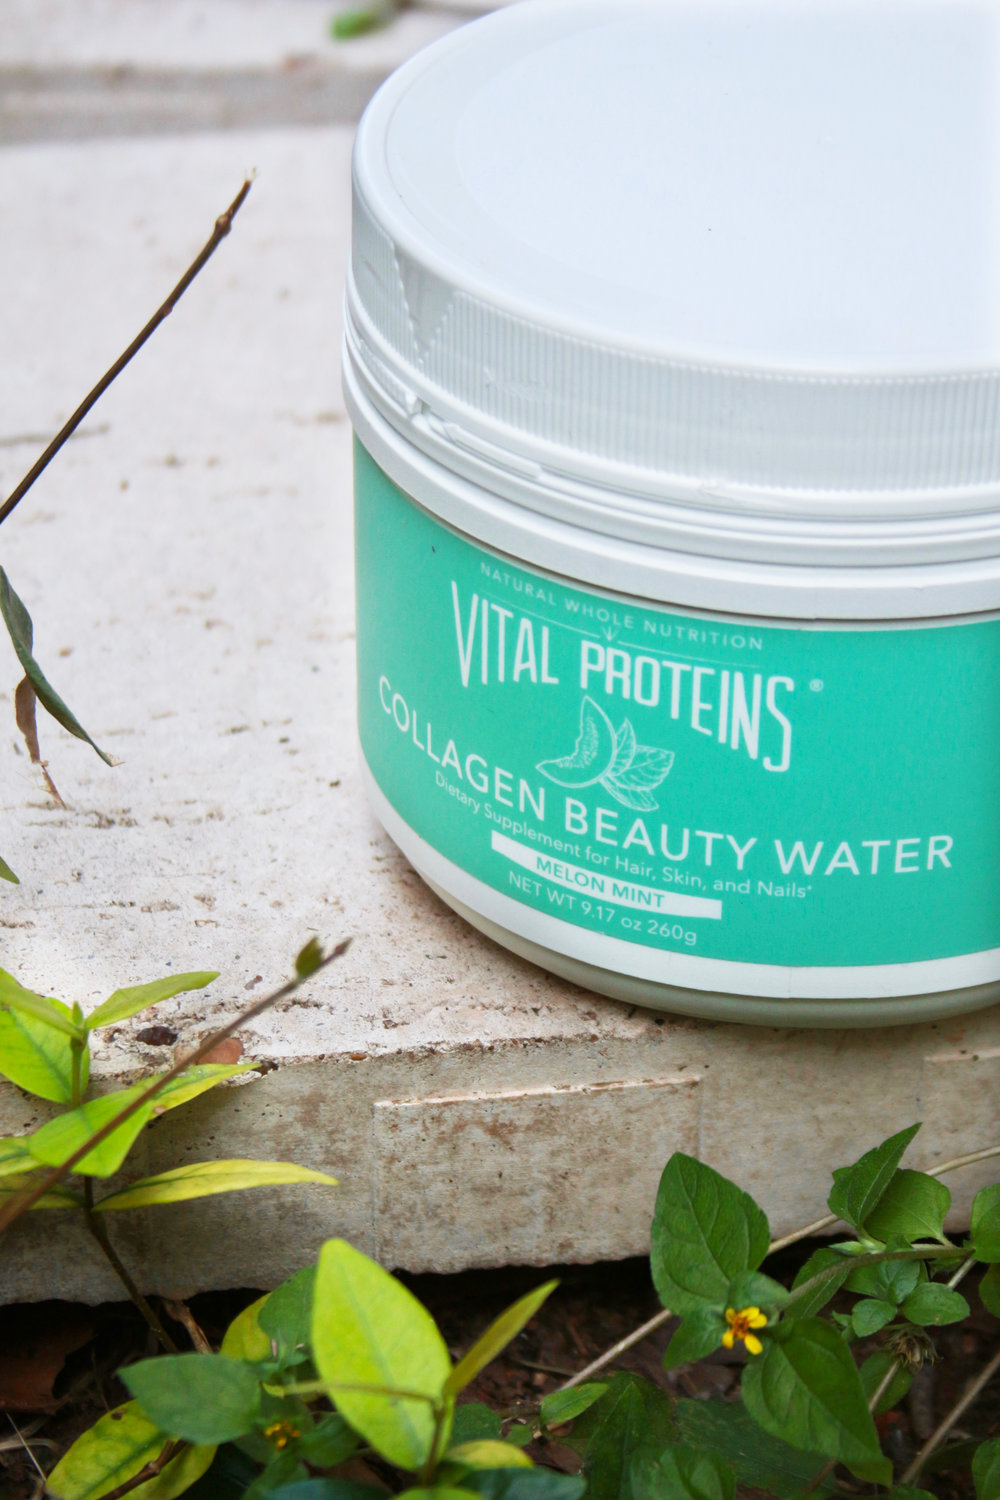 Vital proteins melon mint collagen beauty water